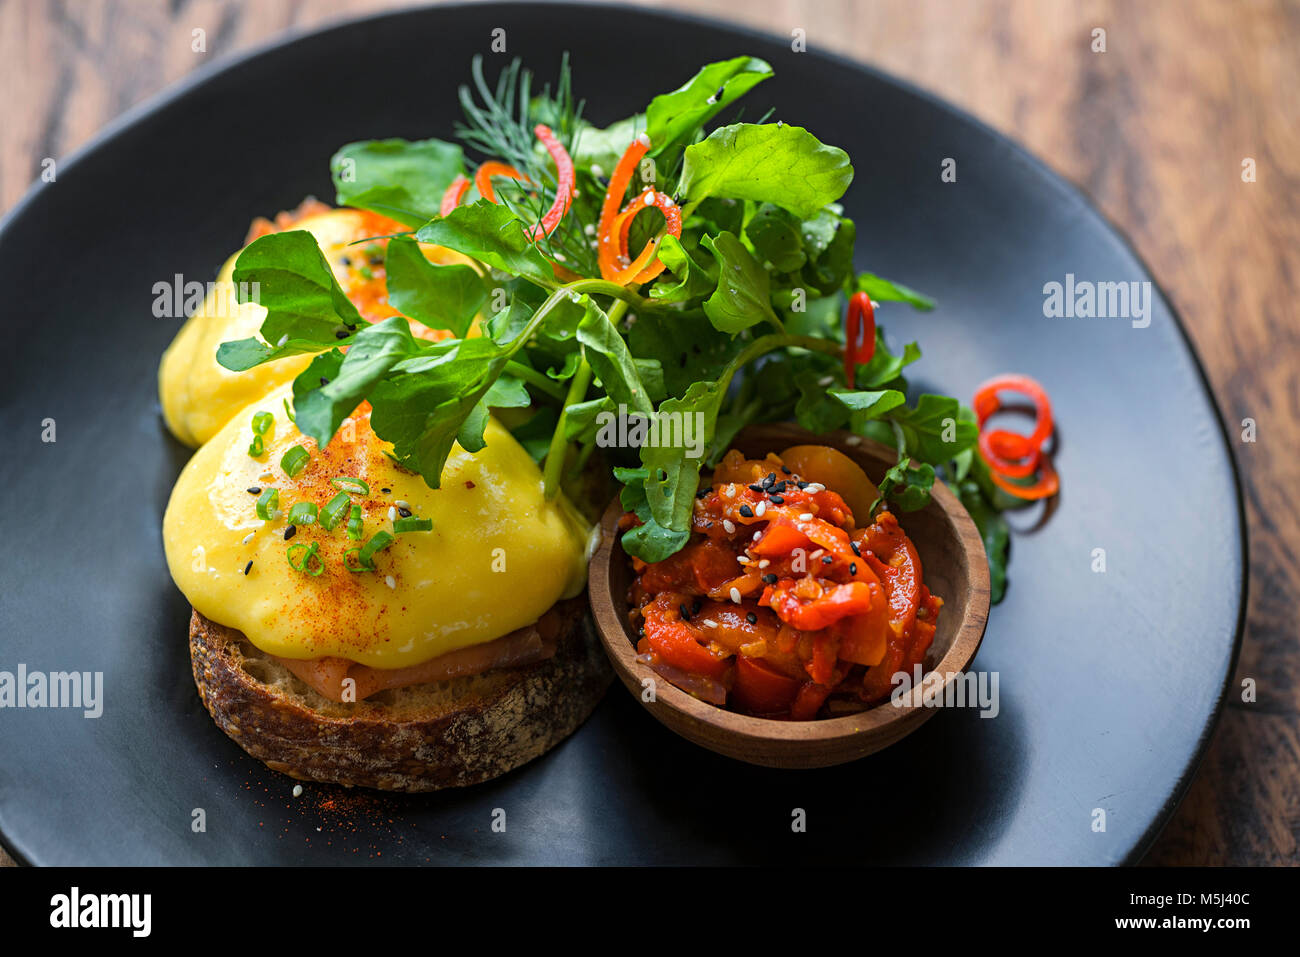 Bread gratinated with cheese with salad and vegetables on plate - Stock Image